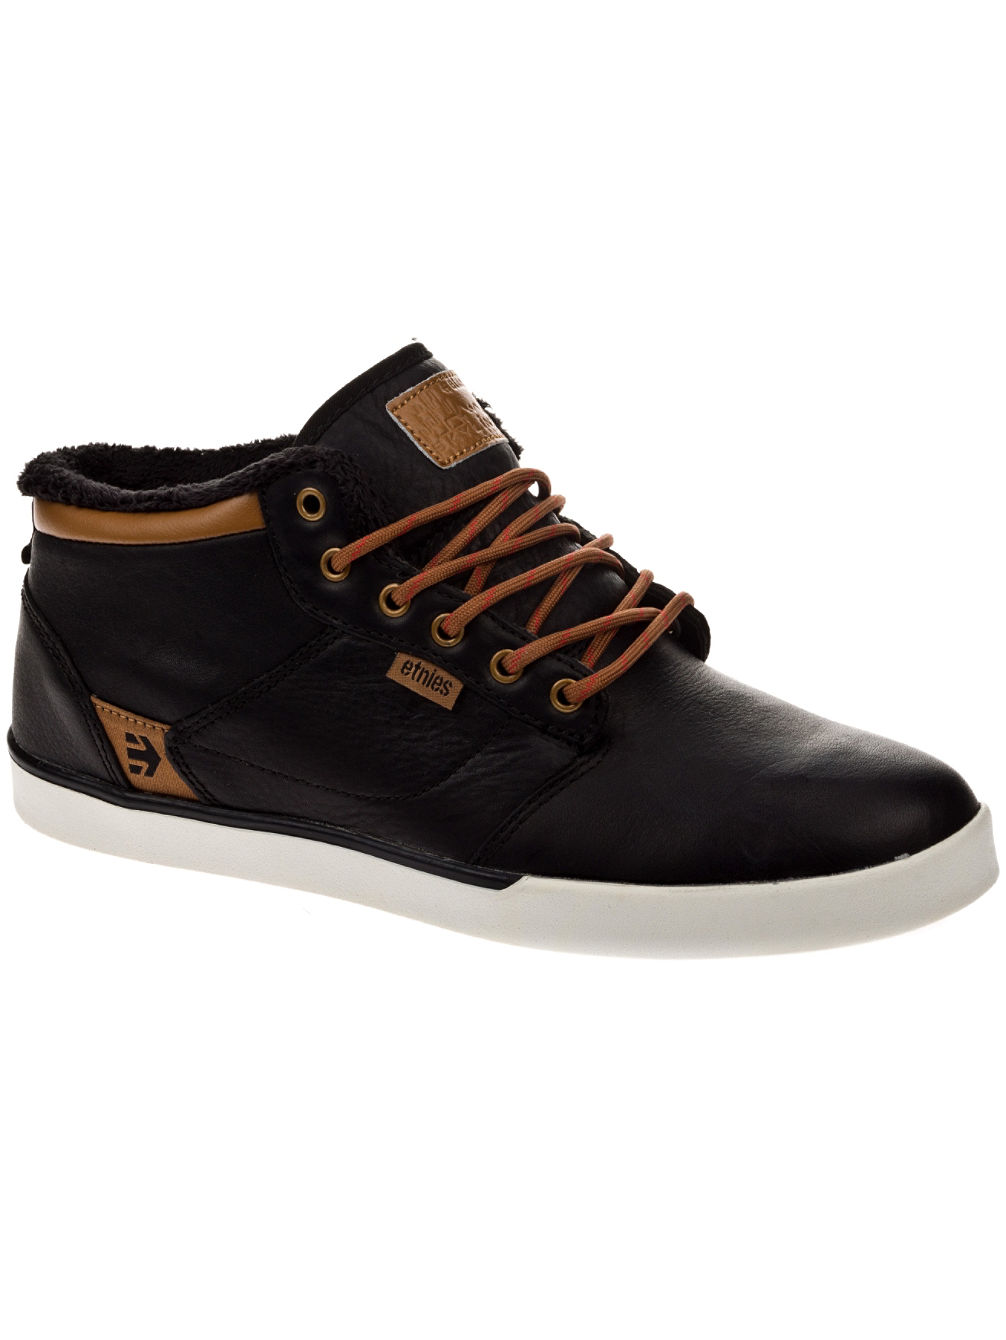 Jefferson Mid Lx Smu Winterschuhe